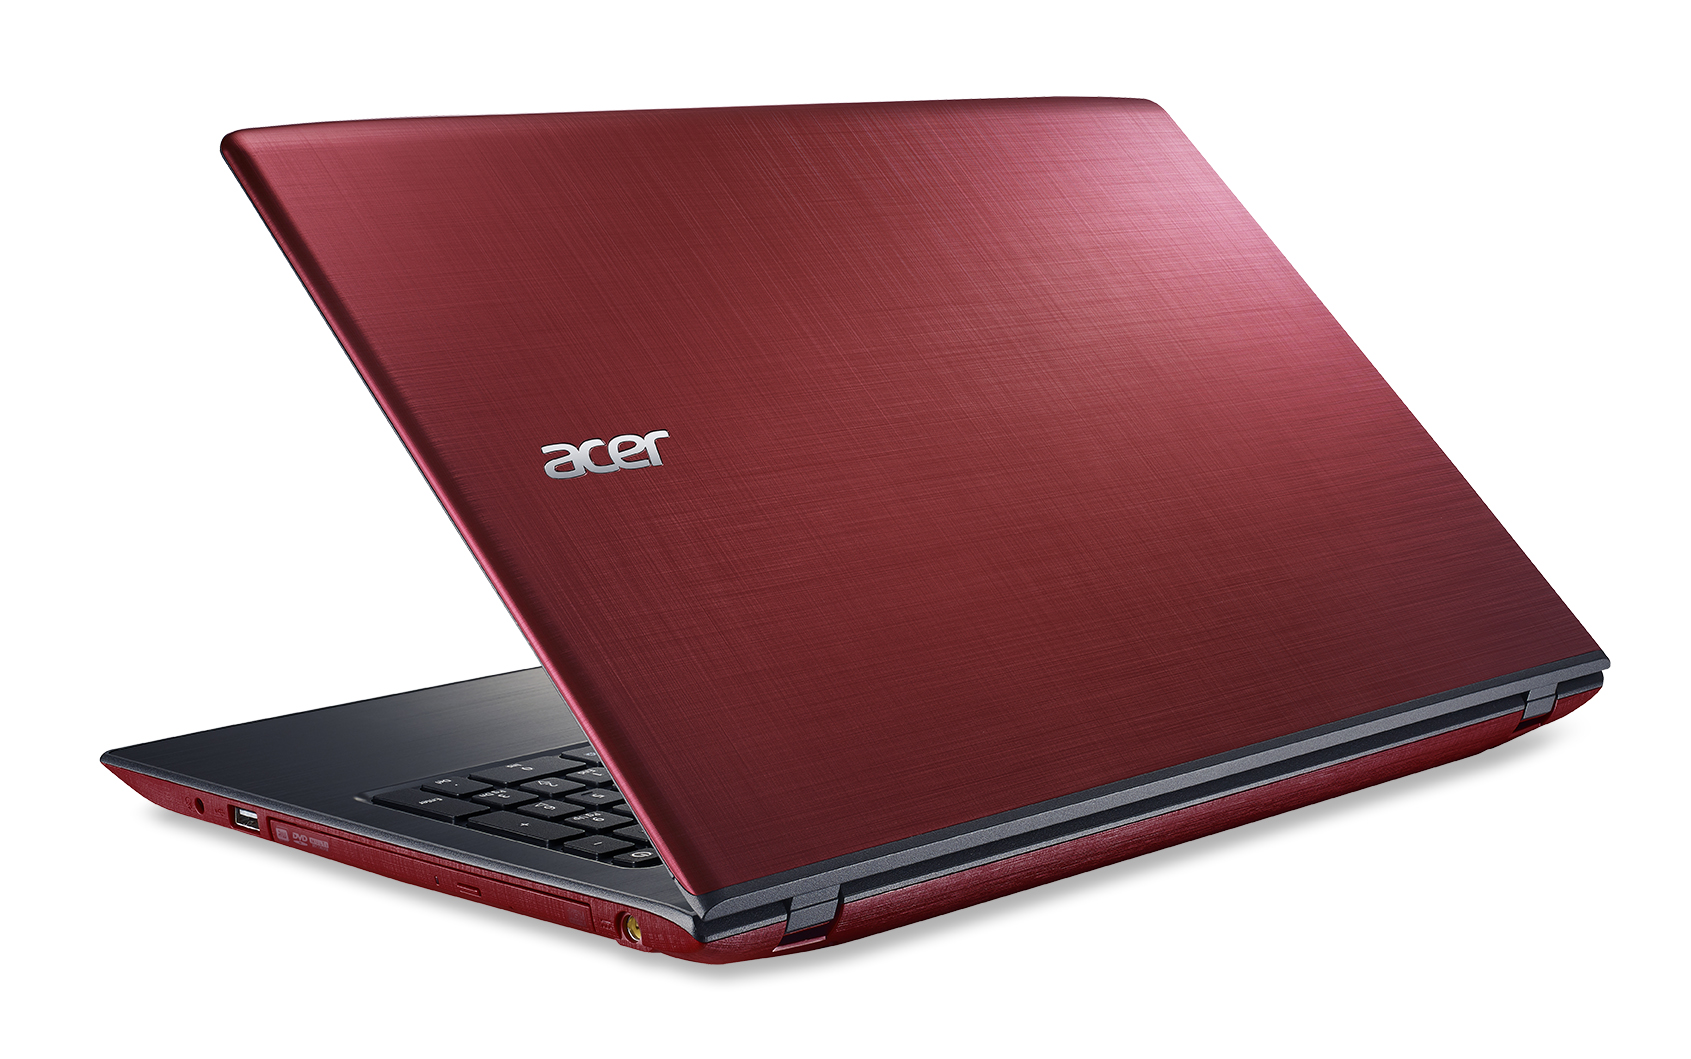 Acer Aspire E5-575G Core i5 Red